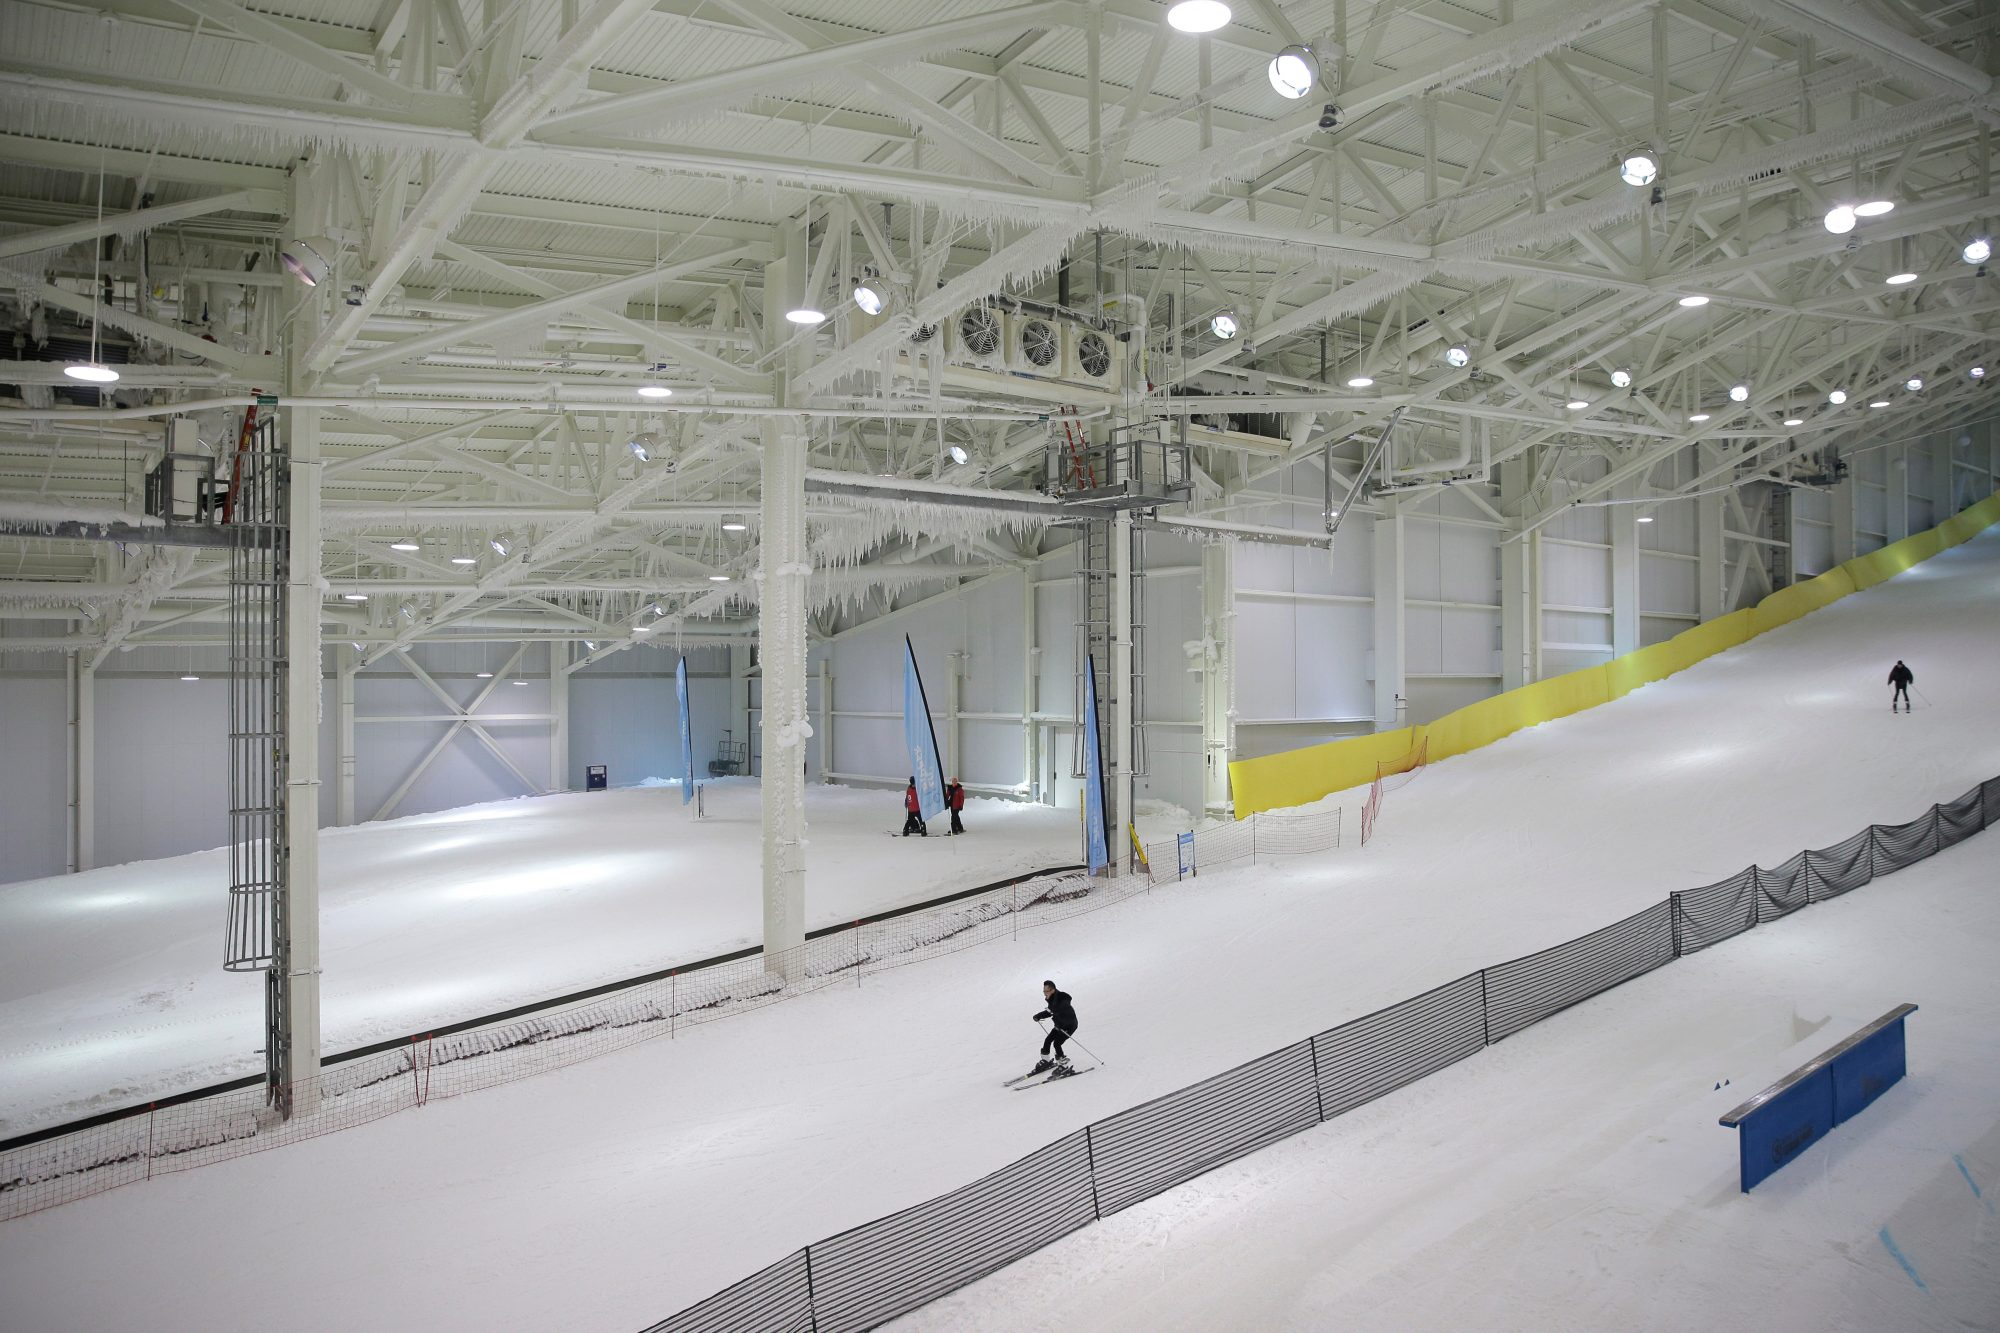 American Dream mall indoor ski